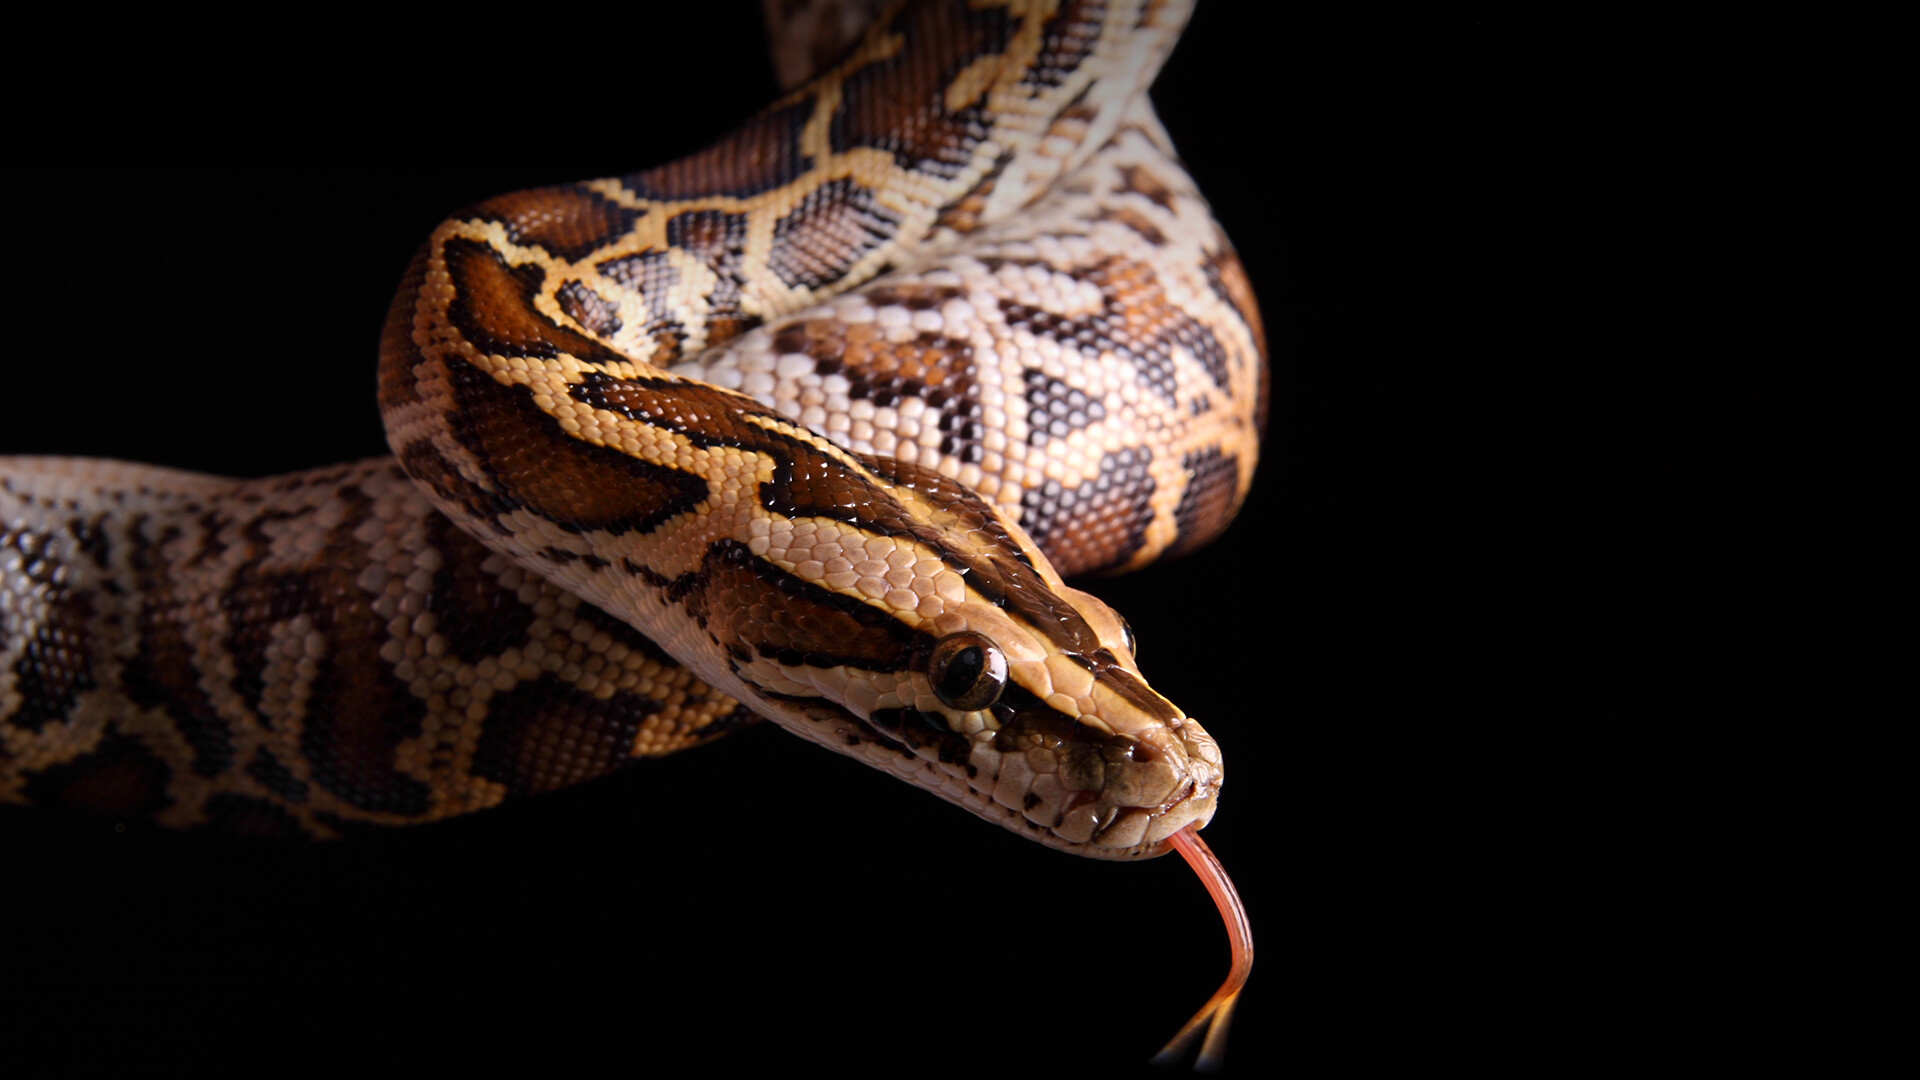 indonesian store sells python meat